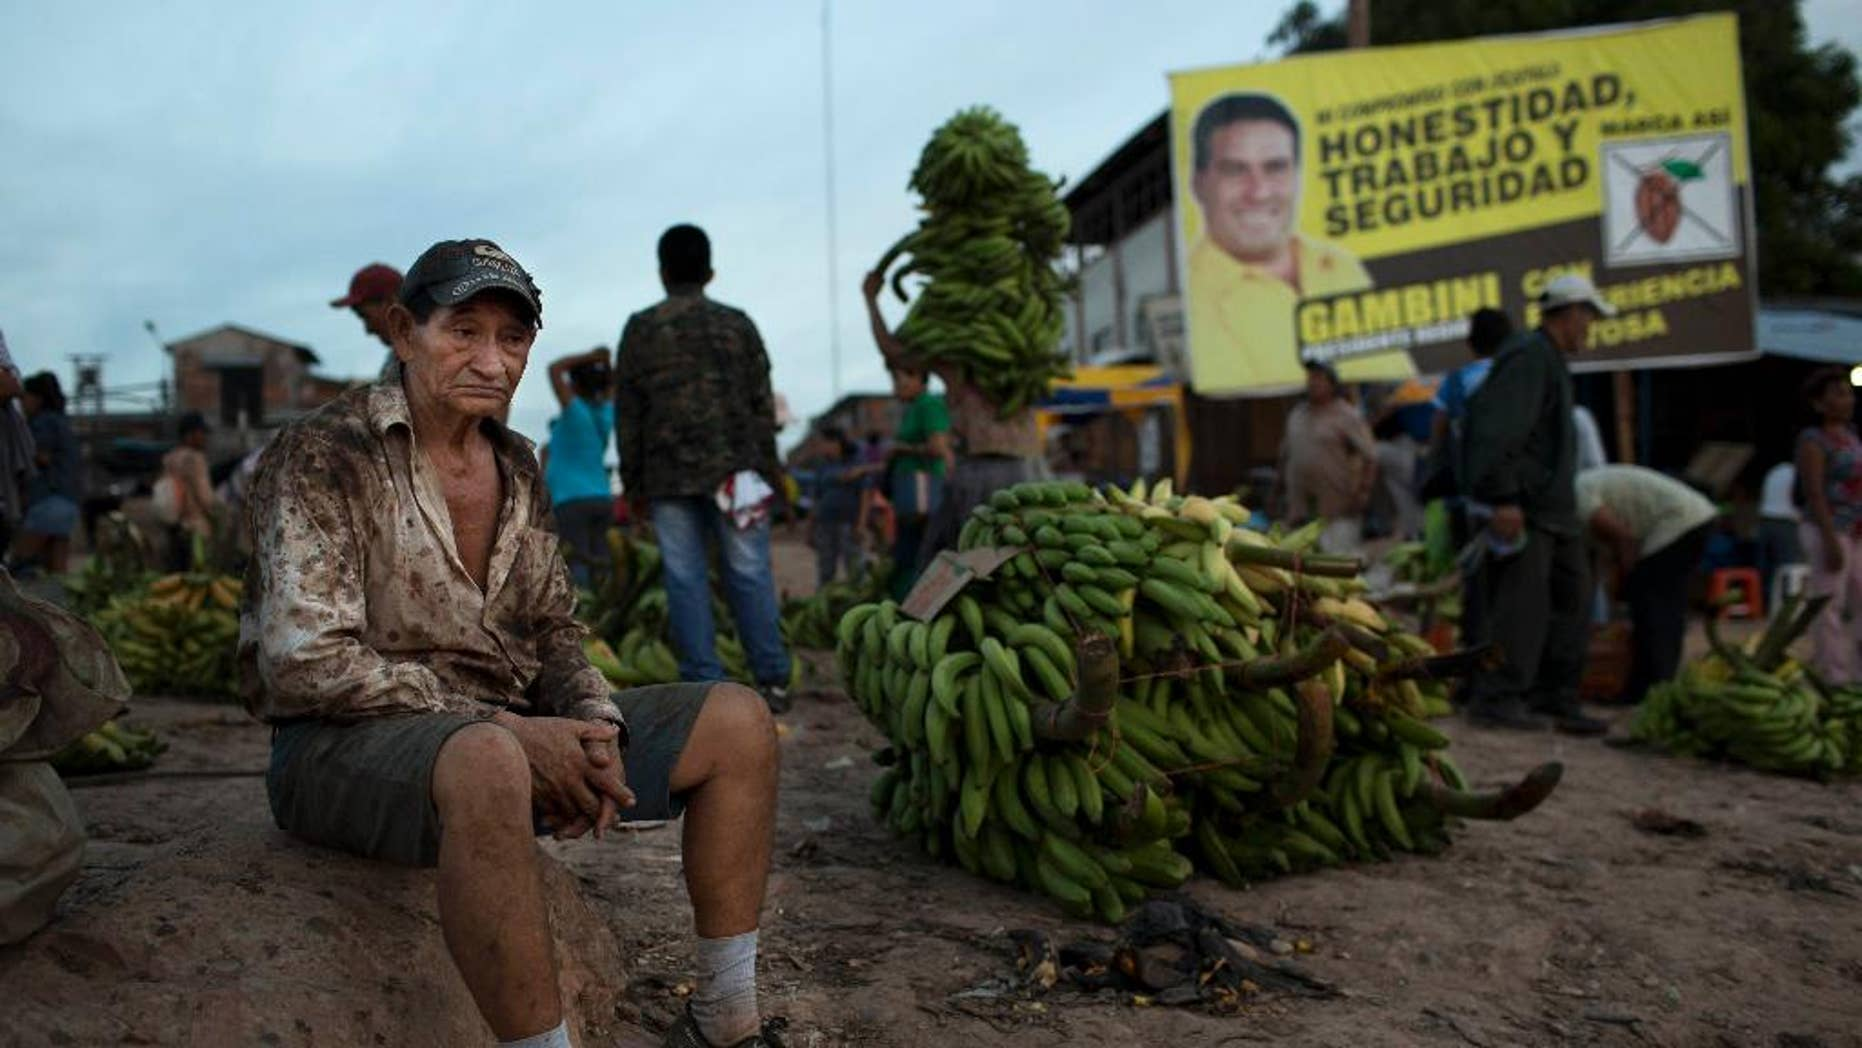 "CHANGES OFFENSE TO MONEY LAUNDERING - In this Sept. 26, 2014 photo, a worker rests near a campaign banner that reads in Spanish; ""Honesty, Jobs and Security,"" promoting gubernatorial candidate Manuel Gambini, in the port of Pucallpa, Peru. Gambini only entered the governor's race in adjacent Ucayali state after a money laundering charge of the incumbent made national headlines, sidelining him. As two-term mayor of Irazola, a poor farming district where the Andes meet the Amazon, Gambini enriched himself, relatives and associates ""closely tied to drug trafficking,"" according to an eight-page order for a money laundering probe issued Aug. 29 and obtained by The Associated Press. (AP Photo/Rodrigo Abd)"